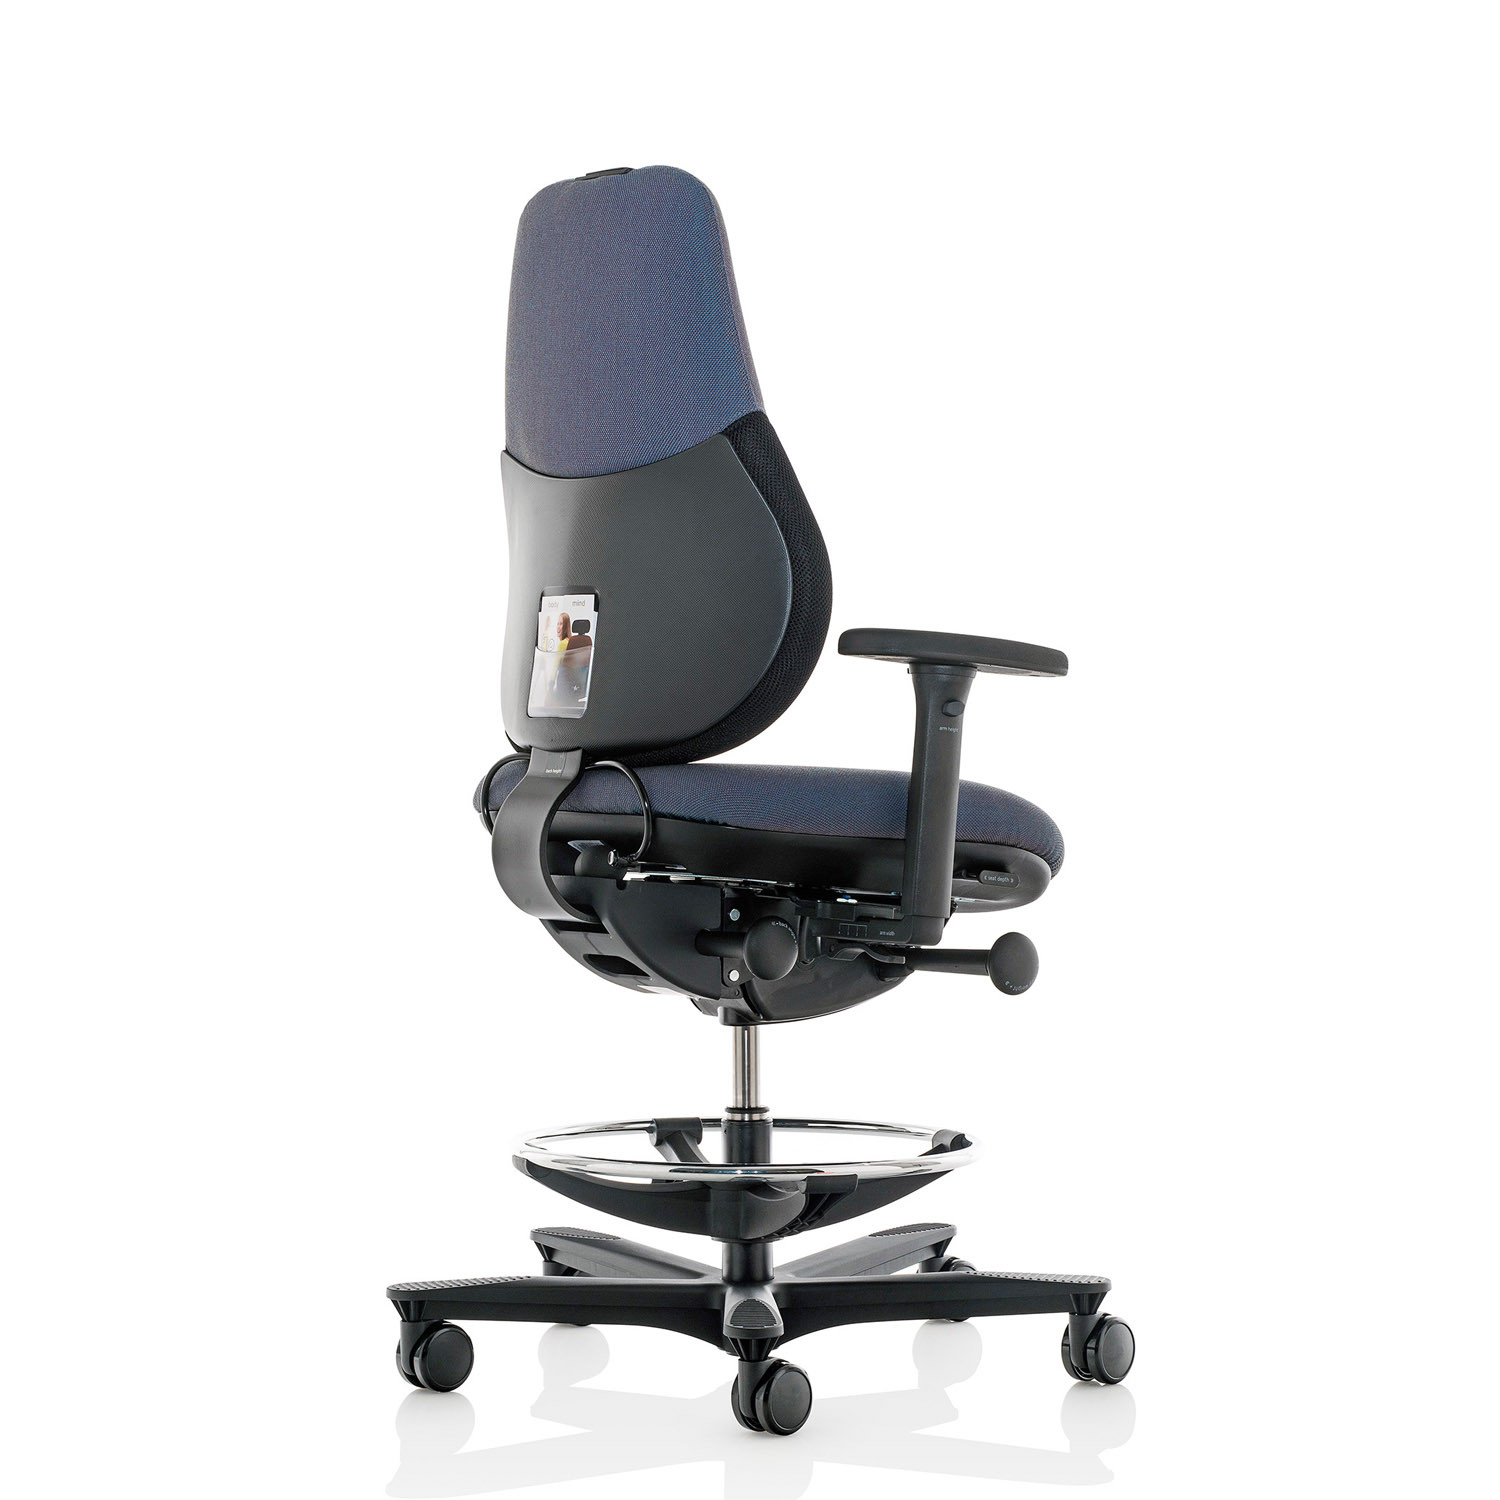 Flo Task Chair from Orangebox